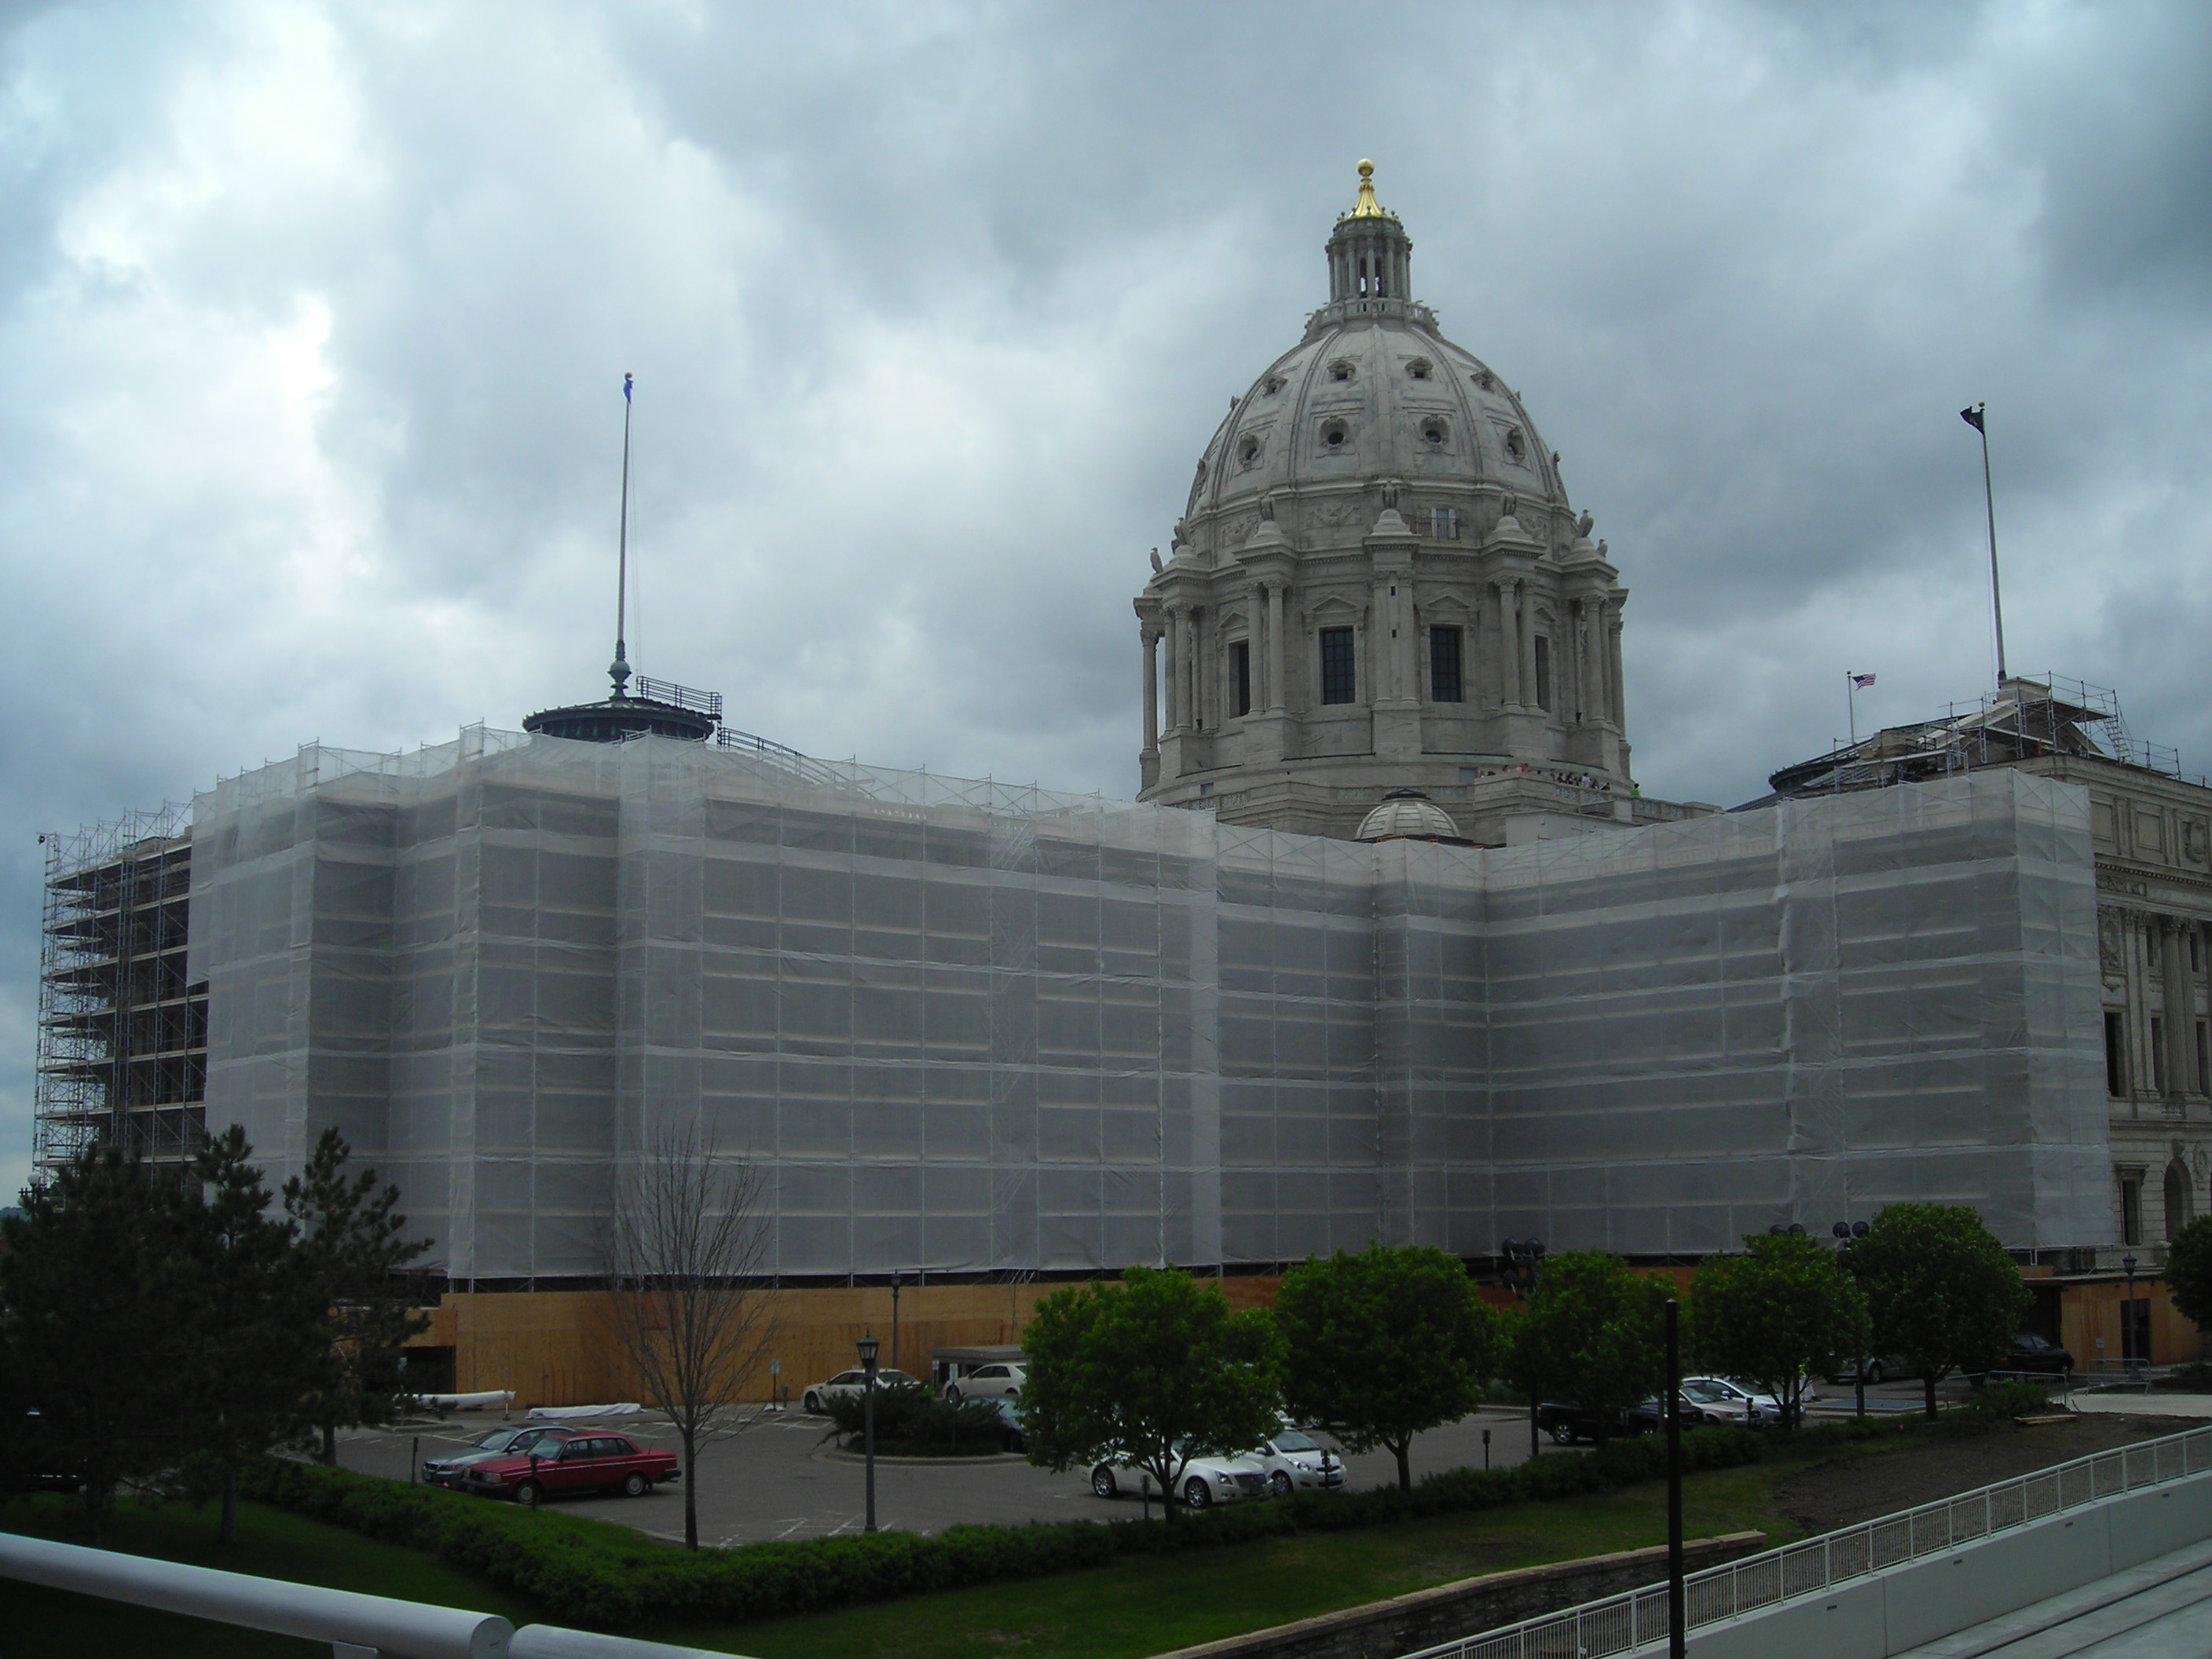 Lead Removal on the Minnesota State Capitol Building